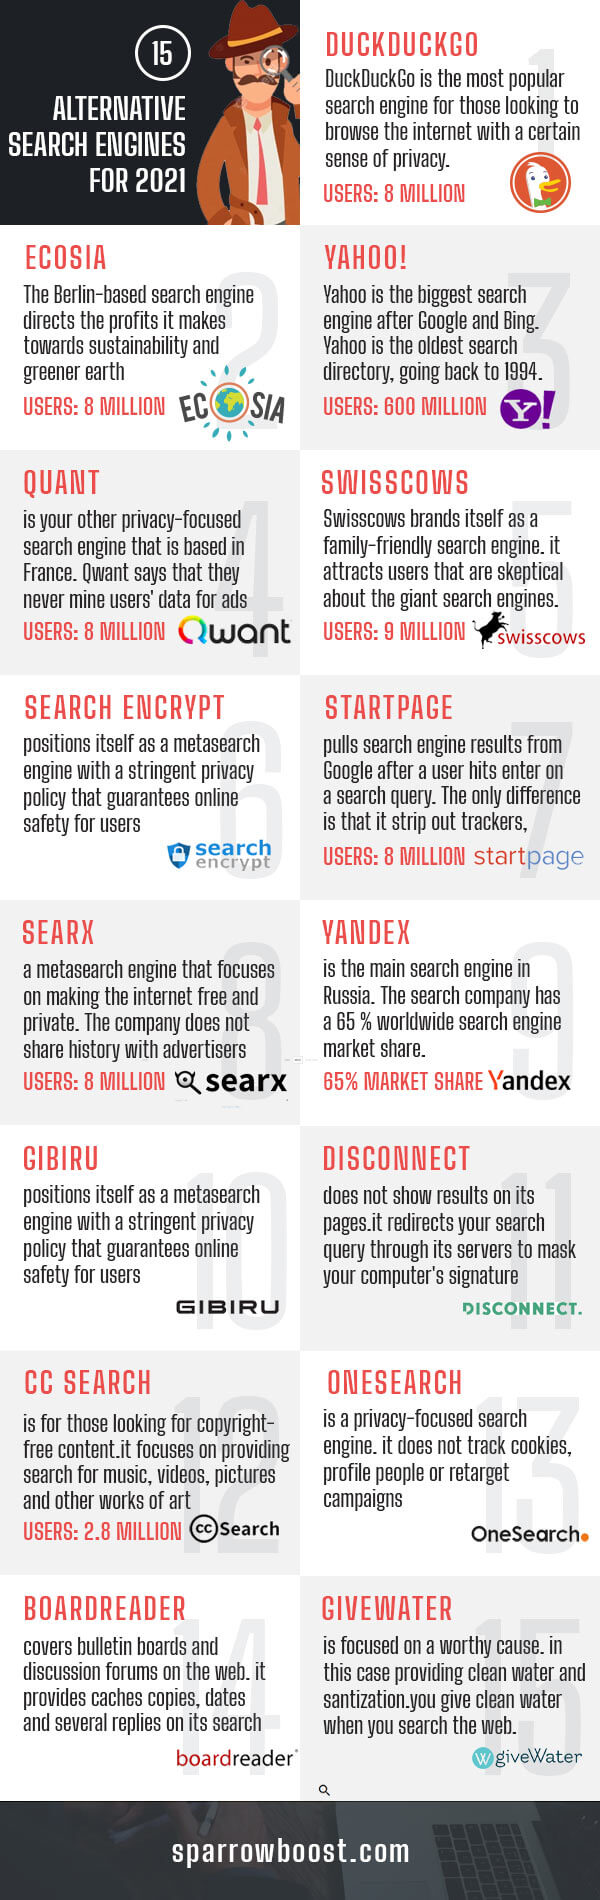 15 Alternative Search Engines For 2021